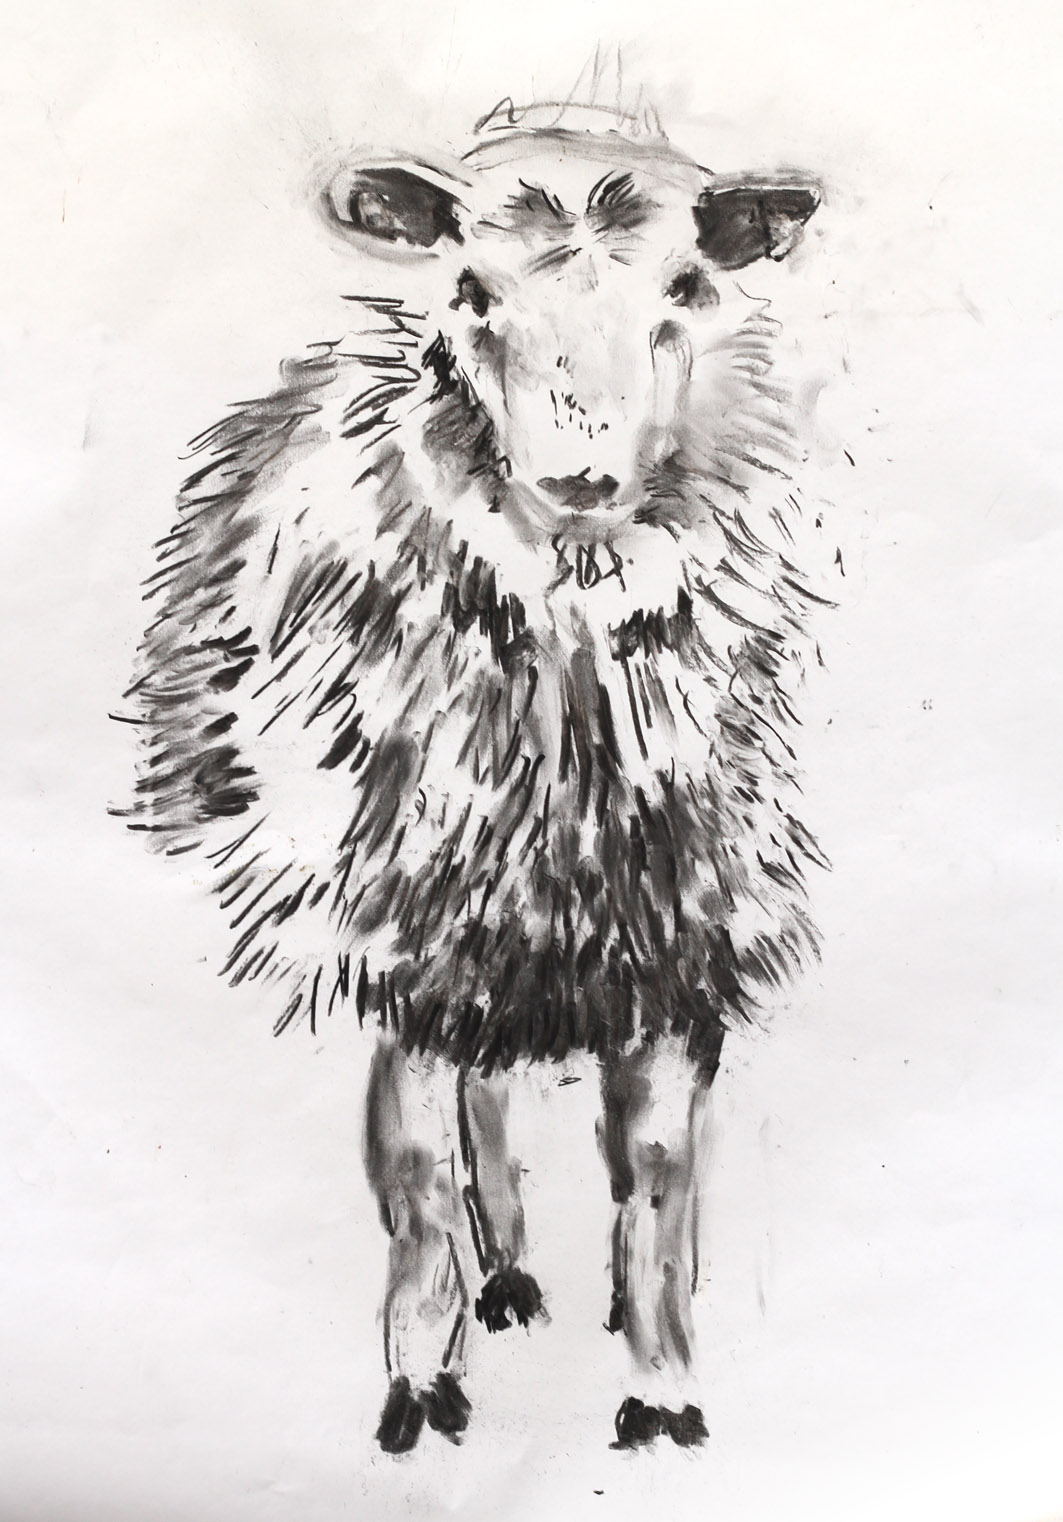 A charcoal drawing on white paper of a sheep looking directly at the viewer. The sheep is looking face-on, with two front legs straight down from its head and a slight turn in its body on the left-hand side. The drawing is made with quick, sharp charcoal marks, light on the face and upper body and dark below